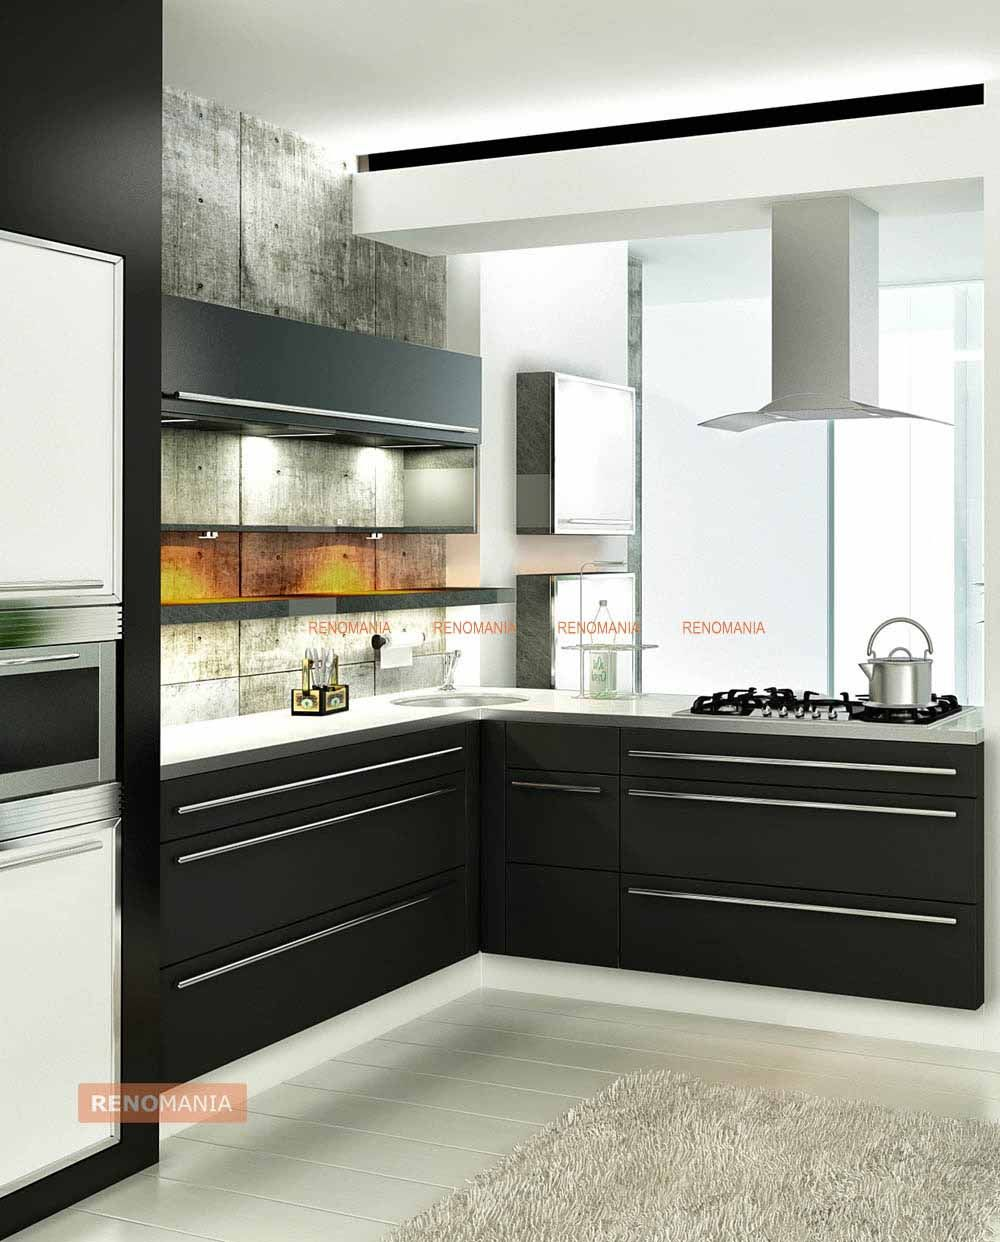 L Shaped Kitchen Https Renomaniacom Designs Photos Kitchen Counter Shape L